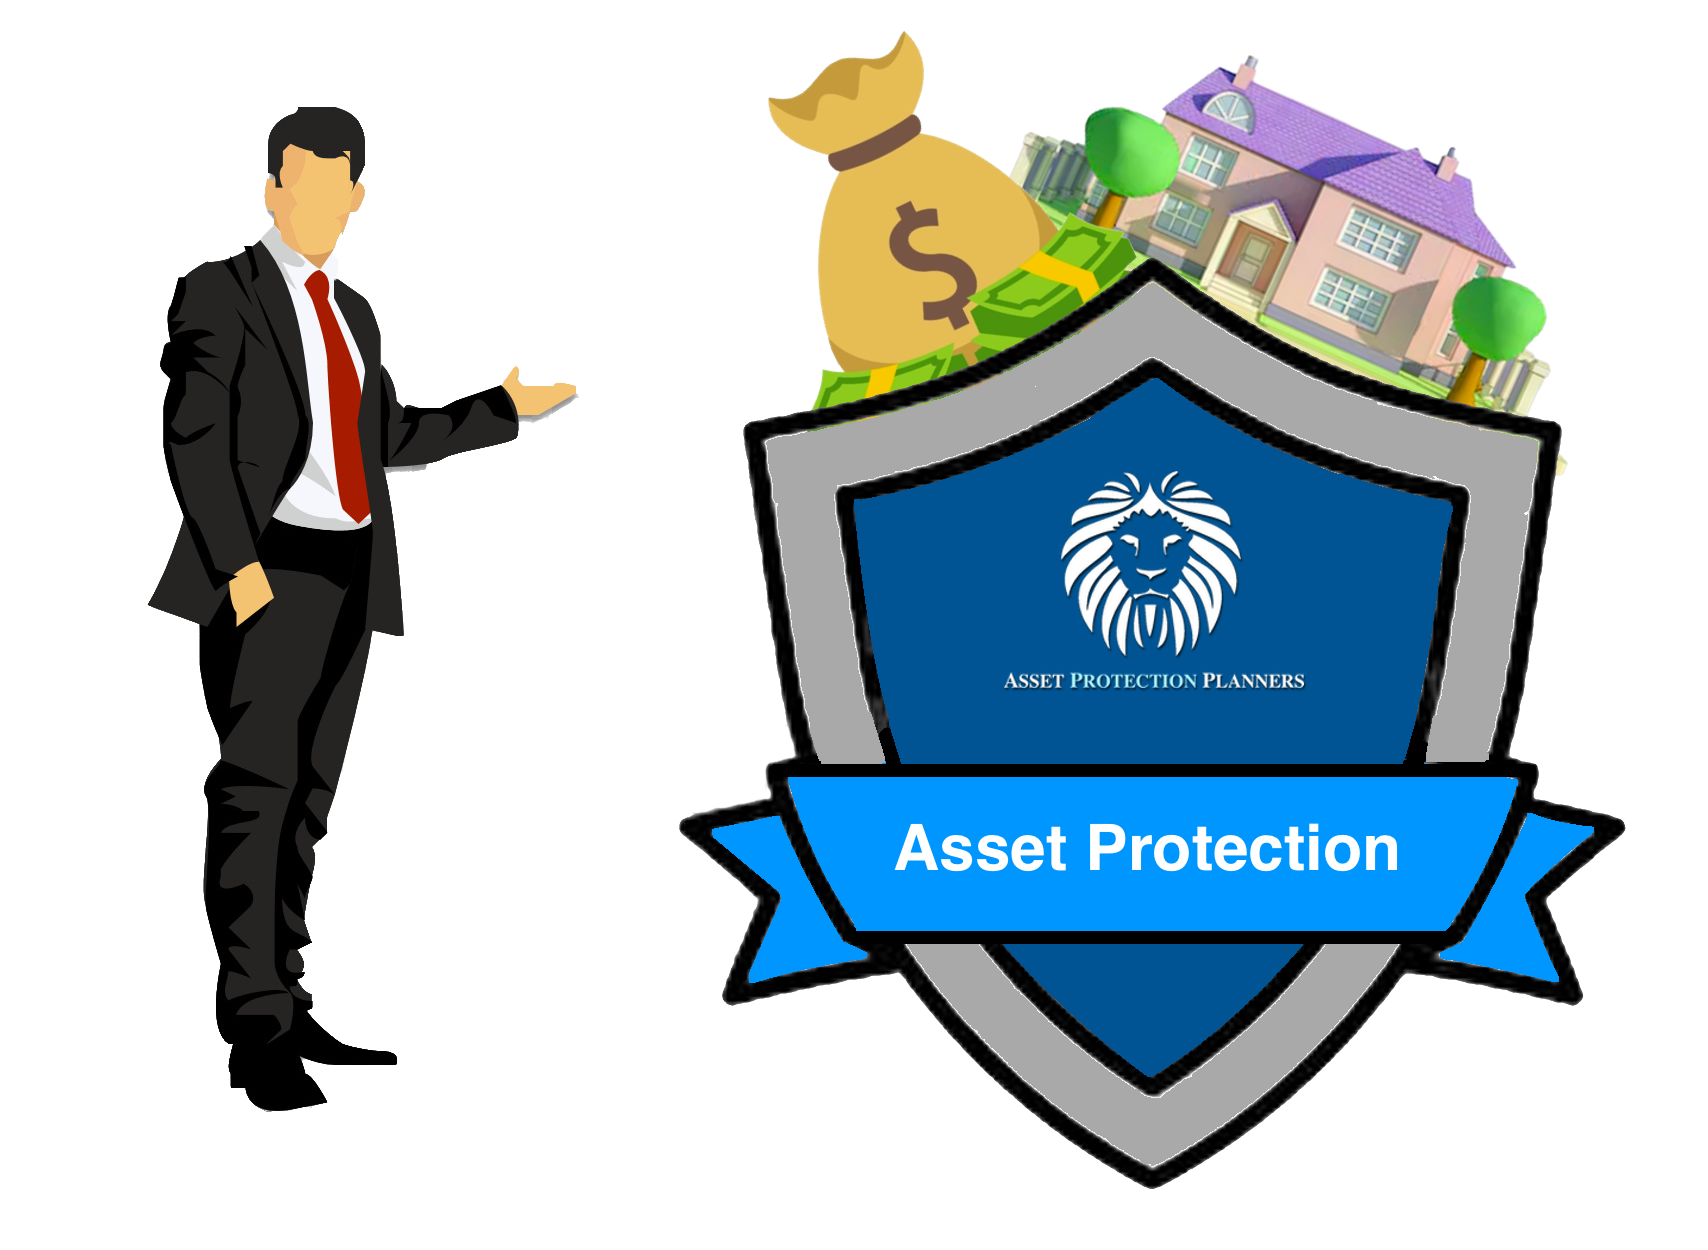 Asset Protection Definition